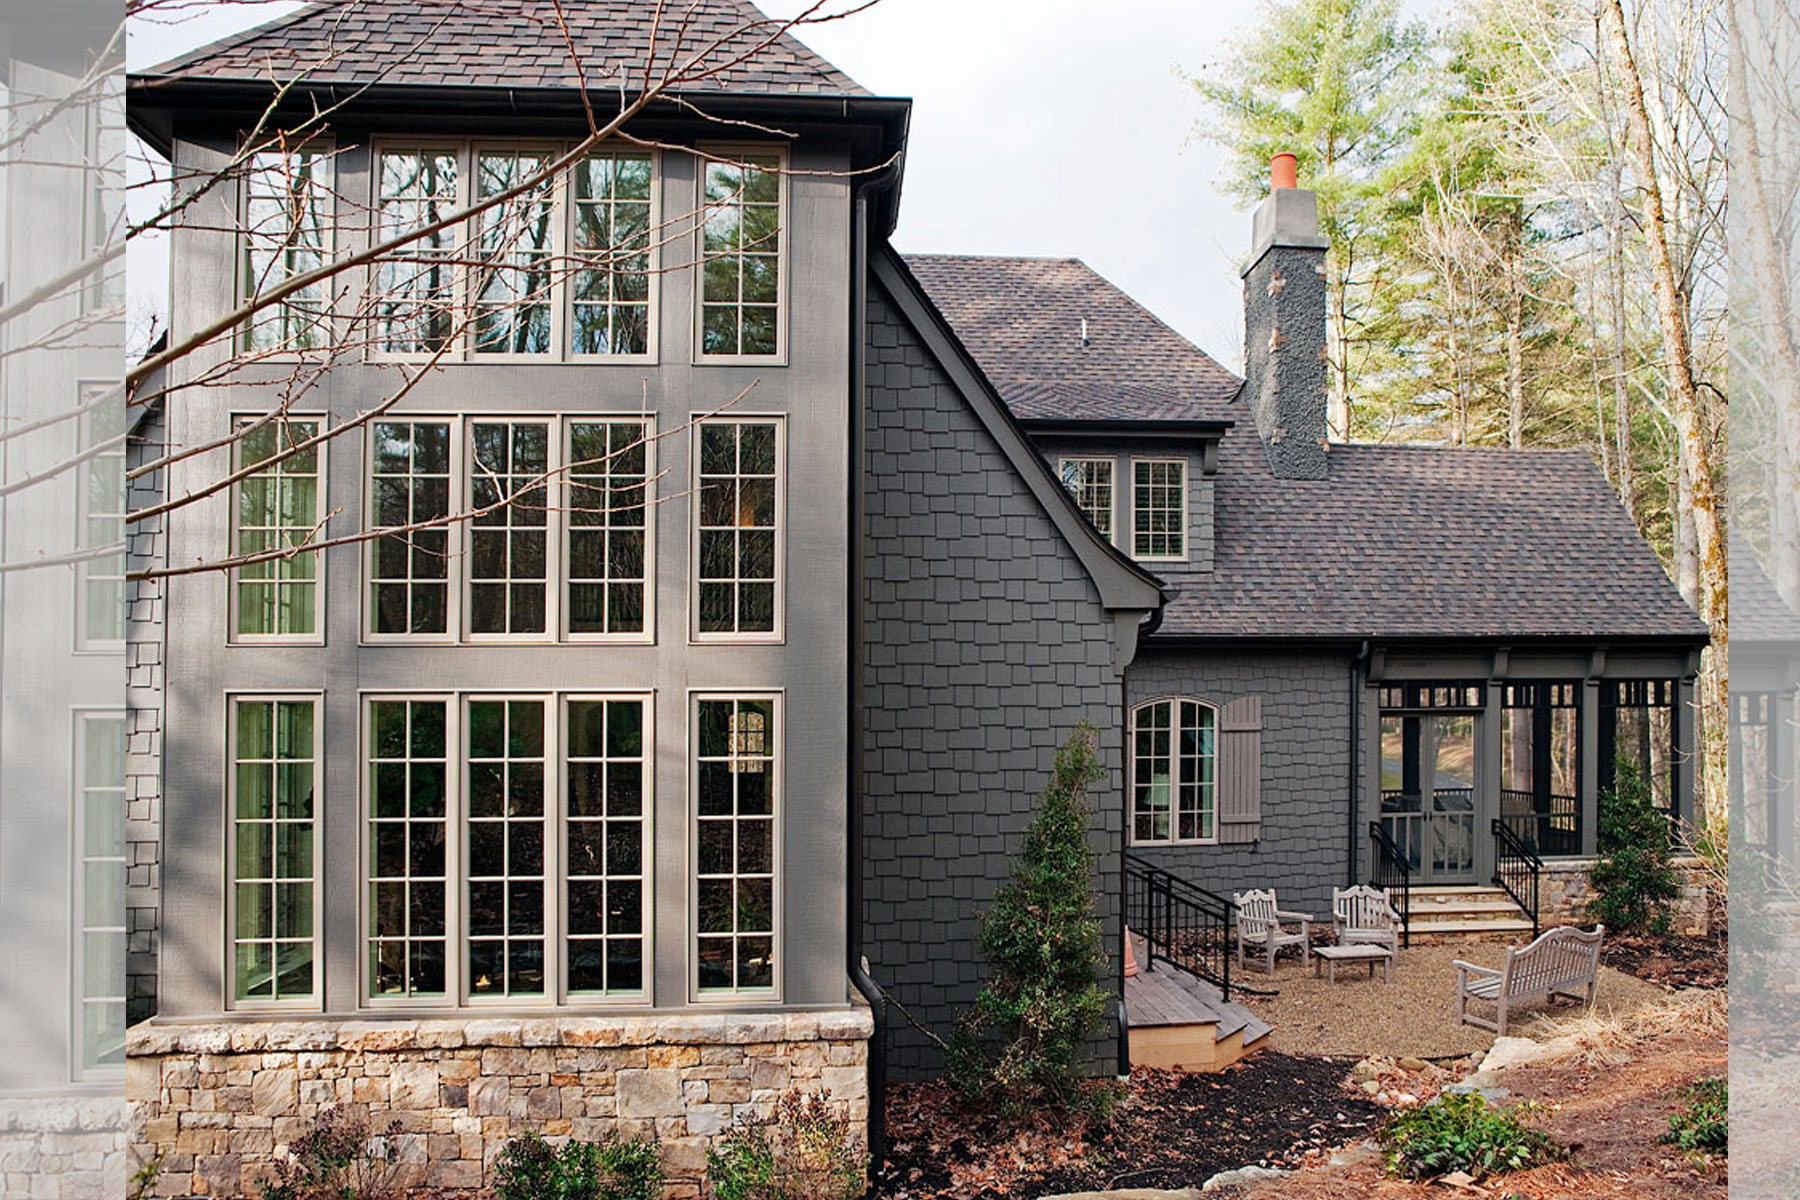 asheville-architect-designed-home-exterior-wall-of-windows